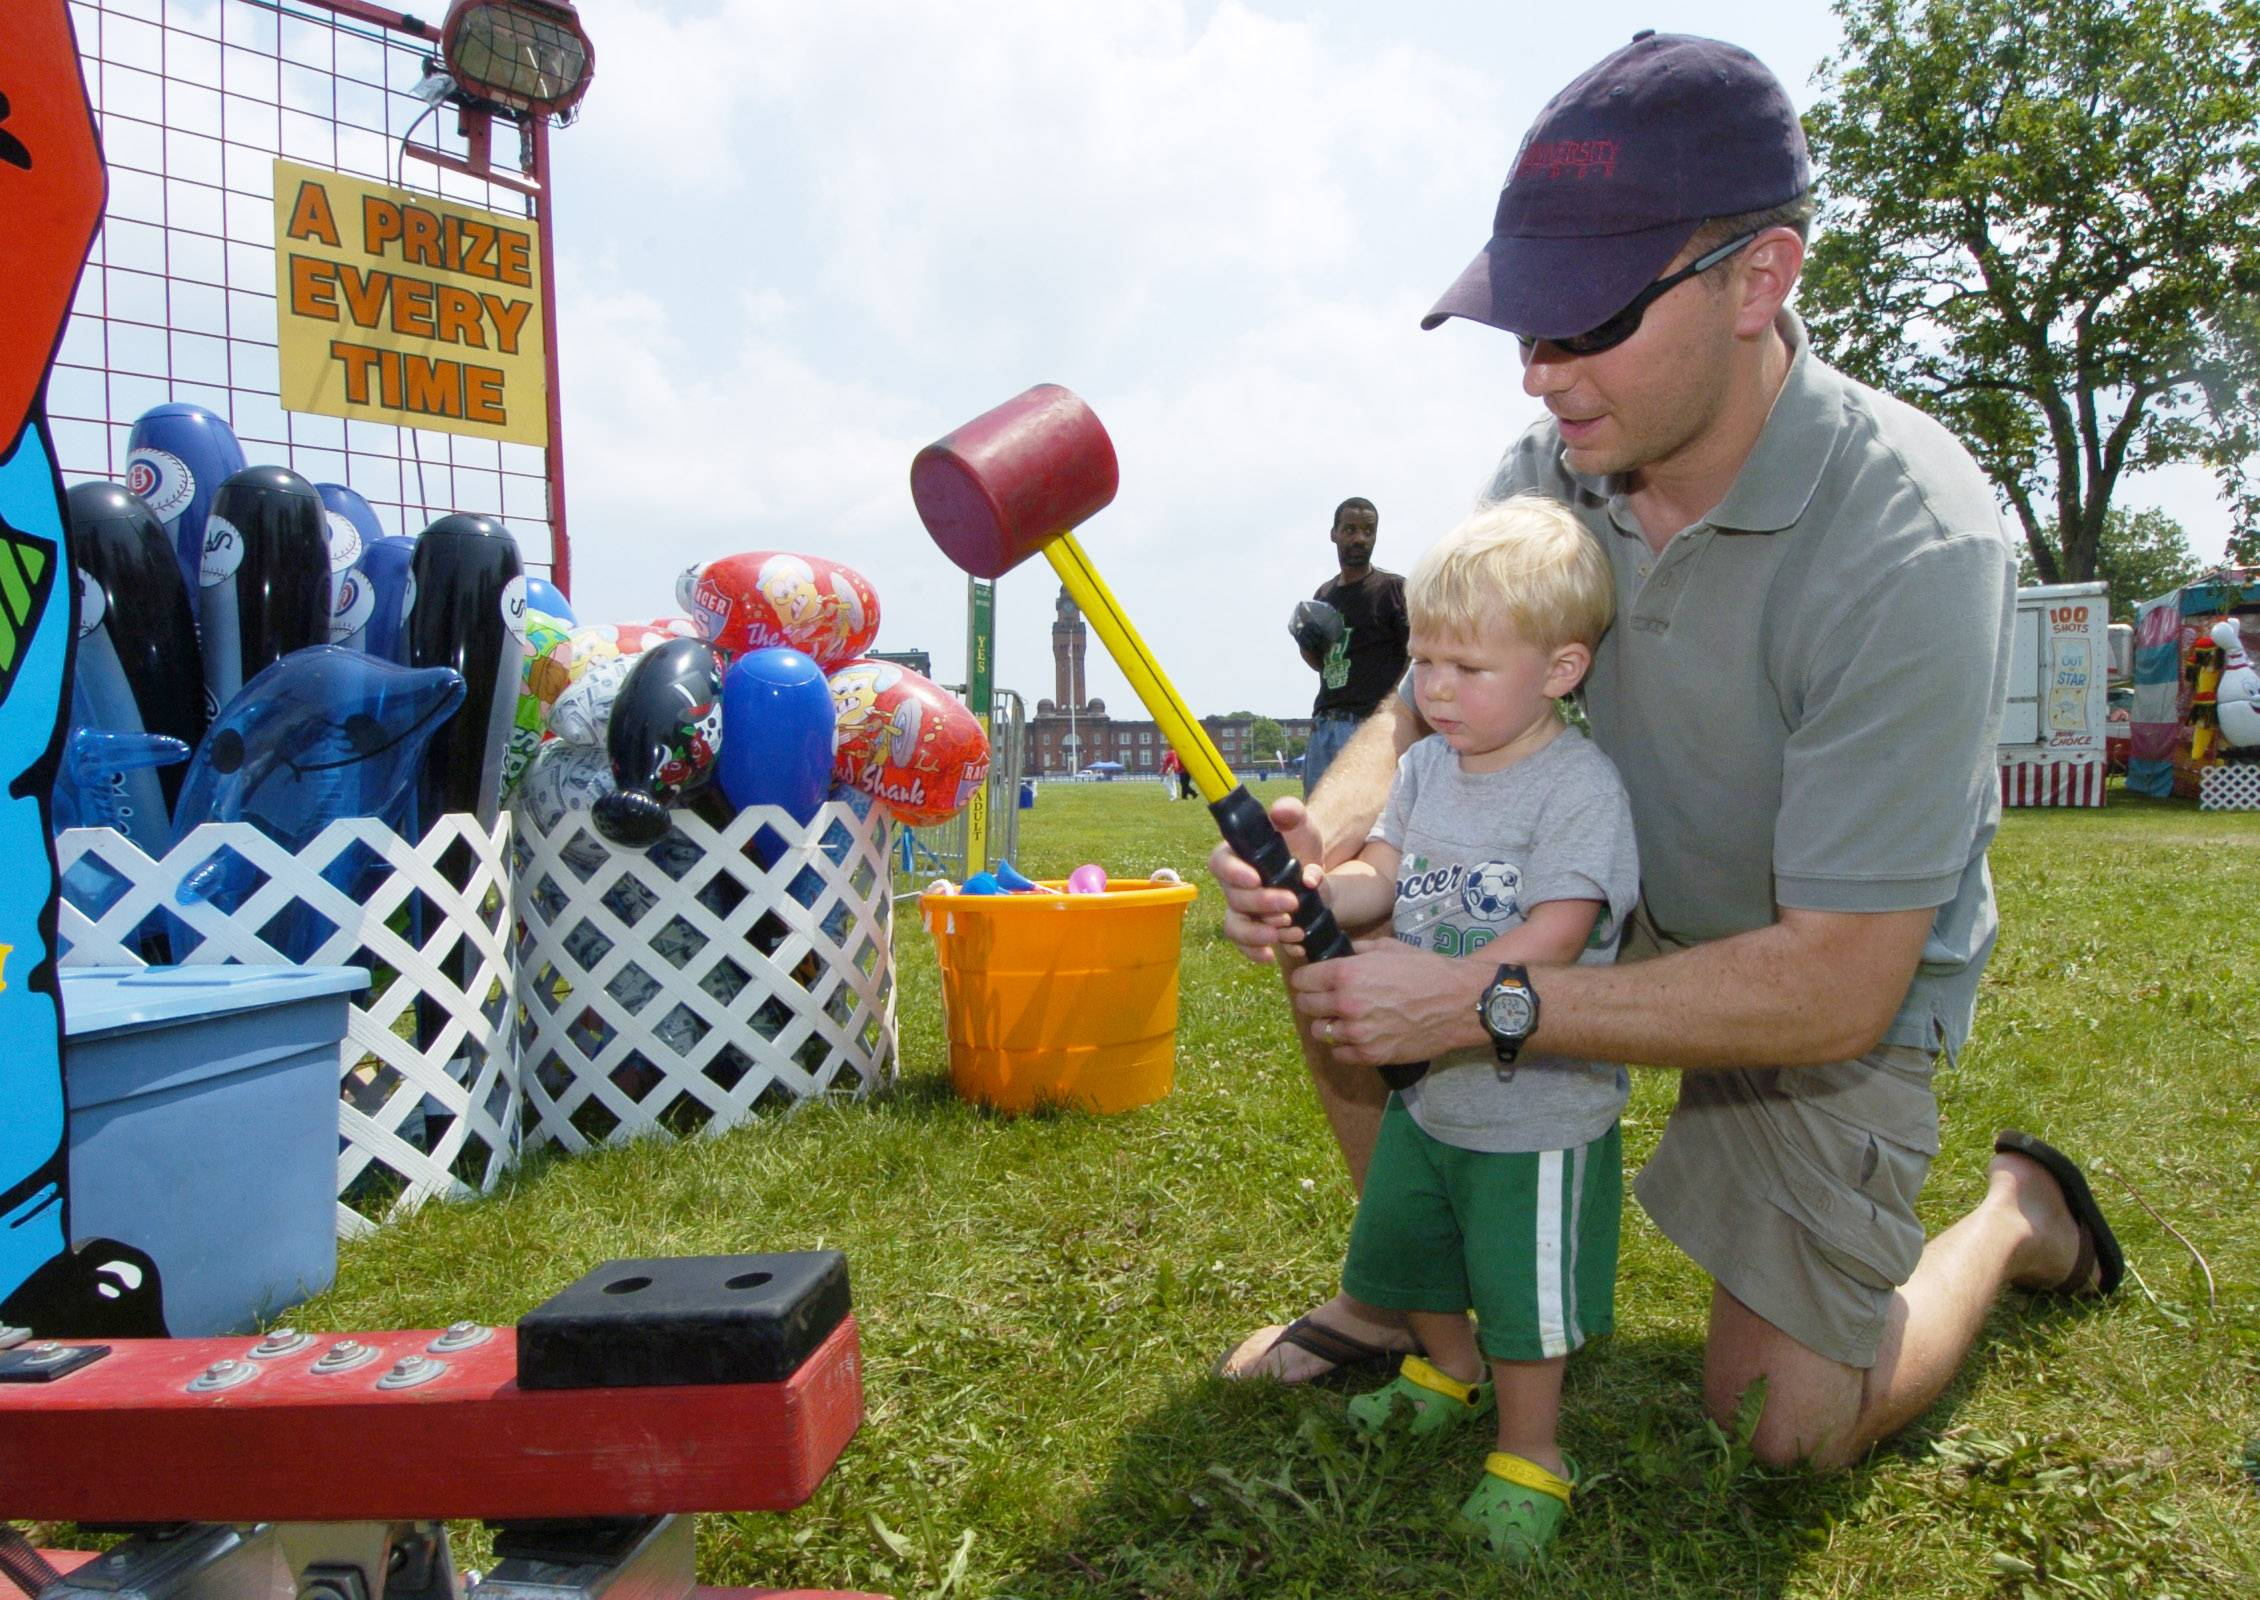 Truman Anderson gets help from his dad, Navy LCDR Scott Anderson, as they play a game during Great Lakes Naval Station's 100th anniversary celebration in 2011.